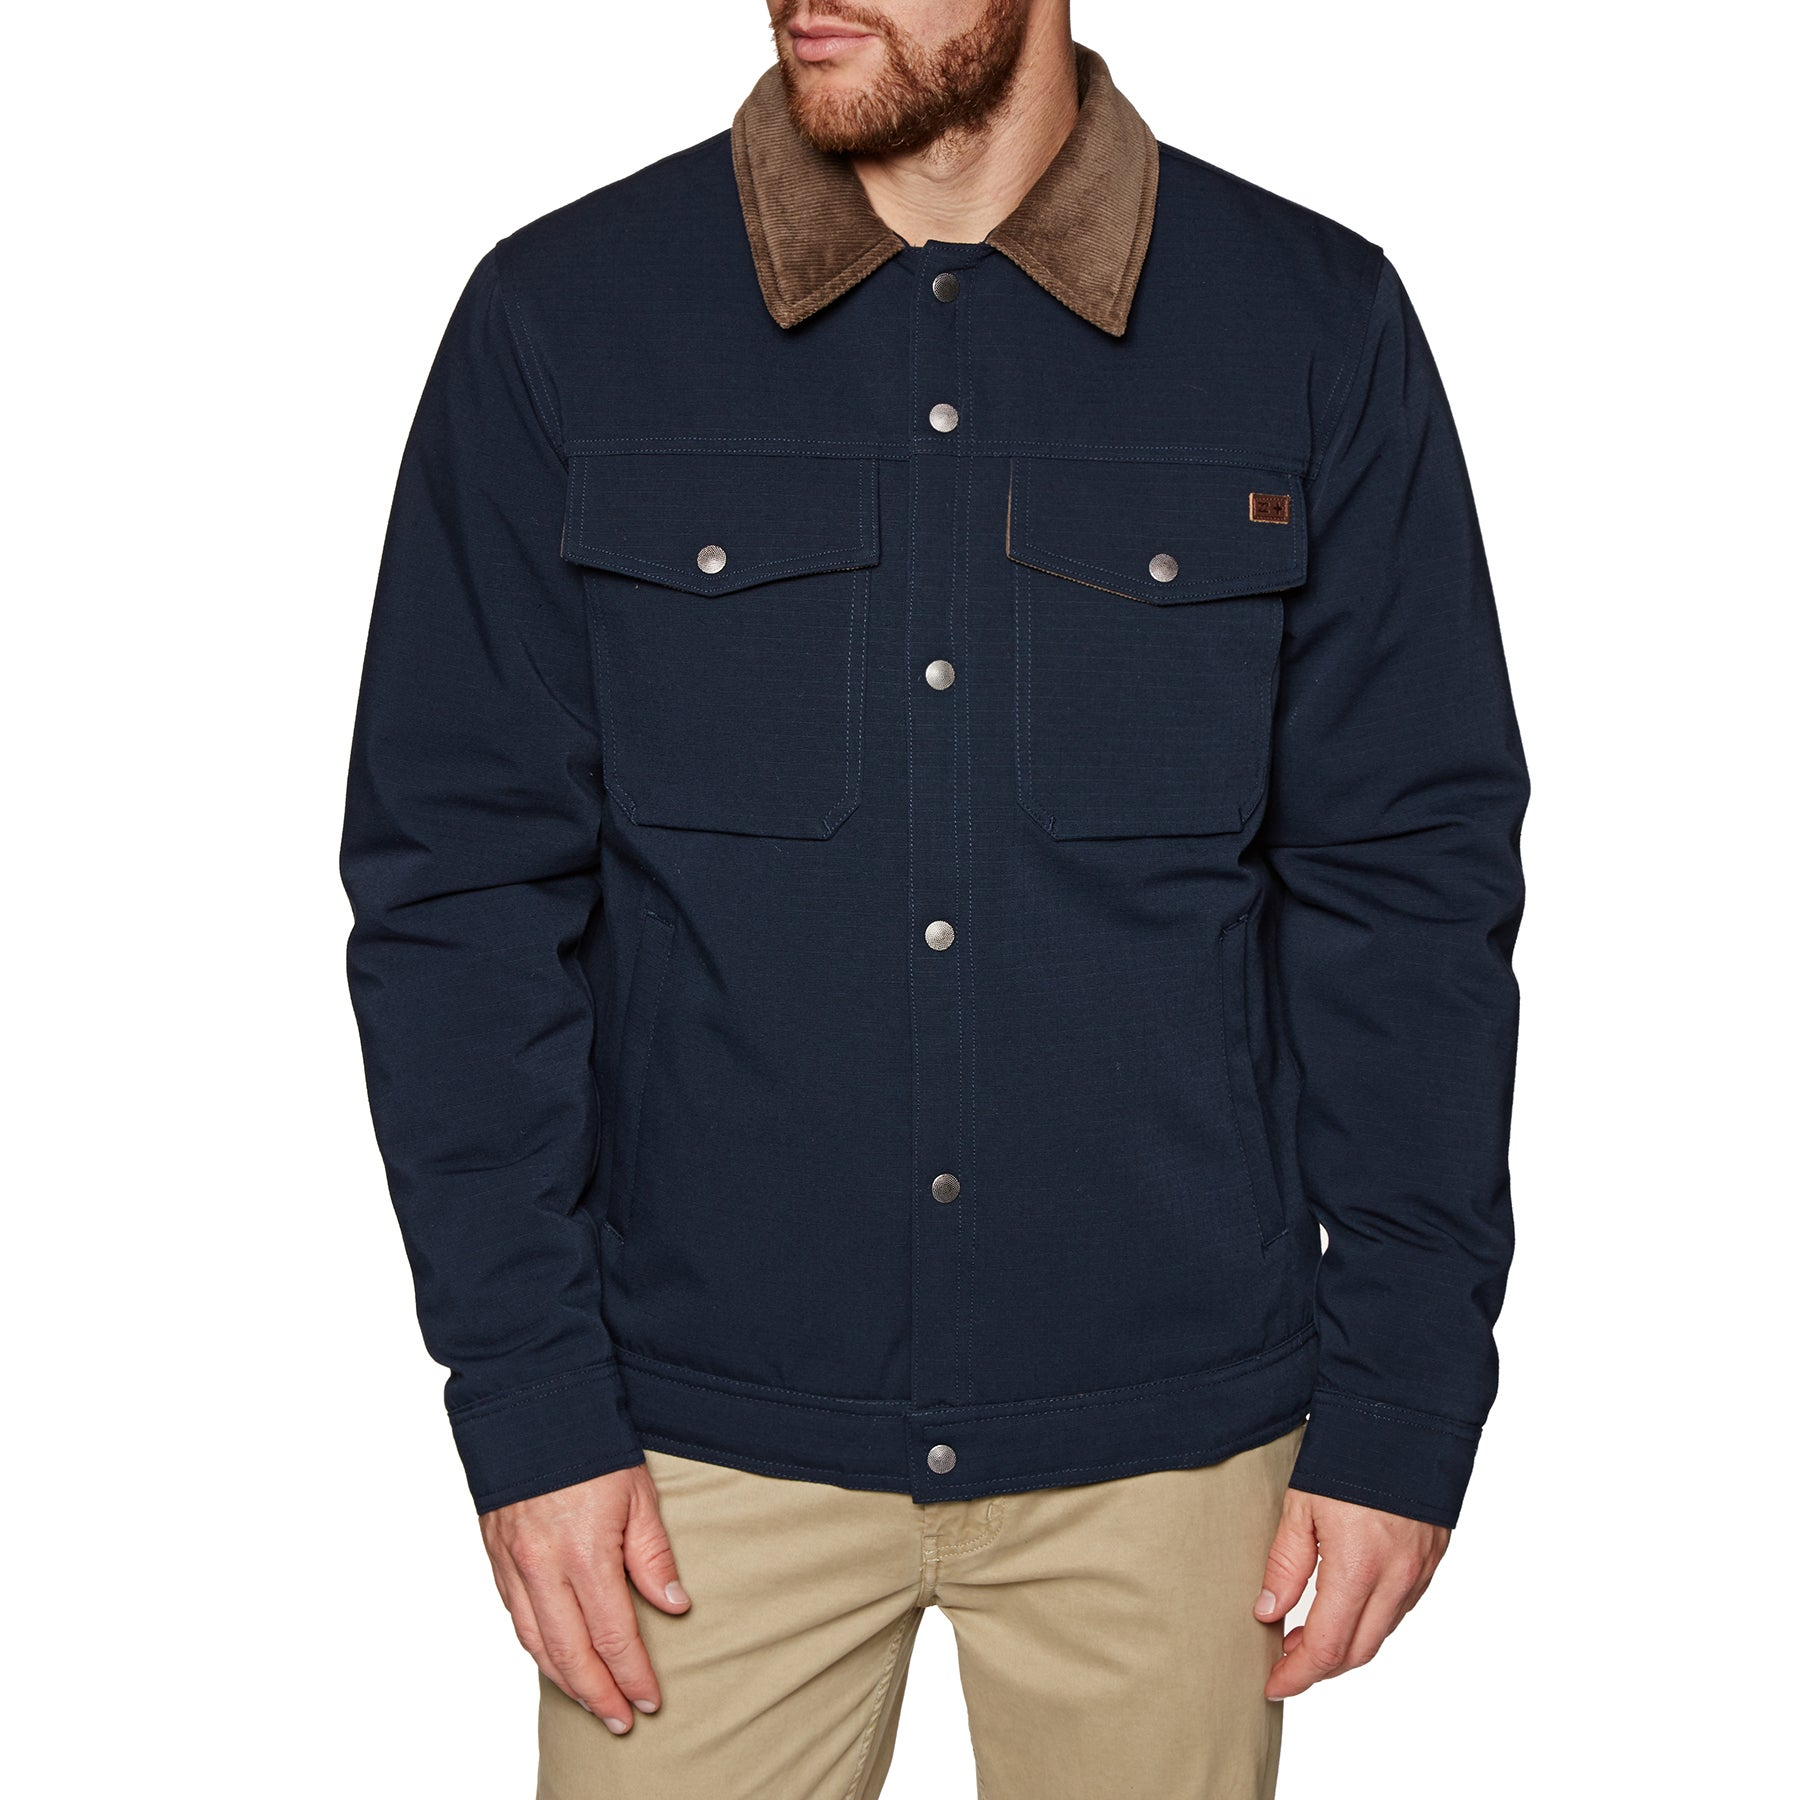 Billabong Barlow 10k Jacket